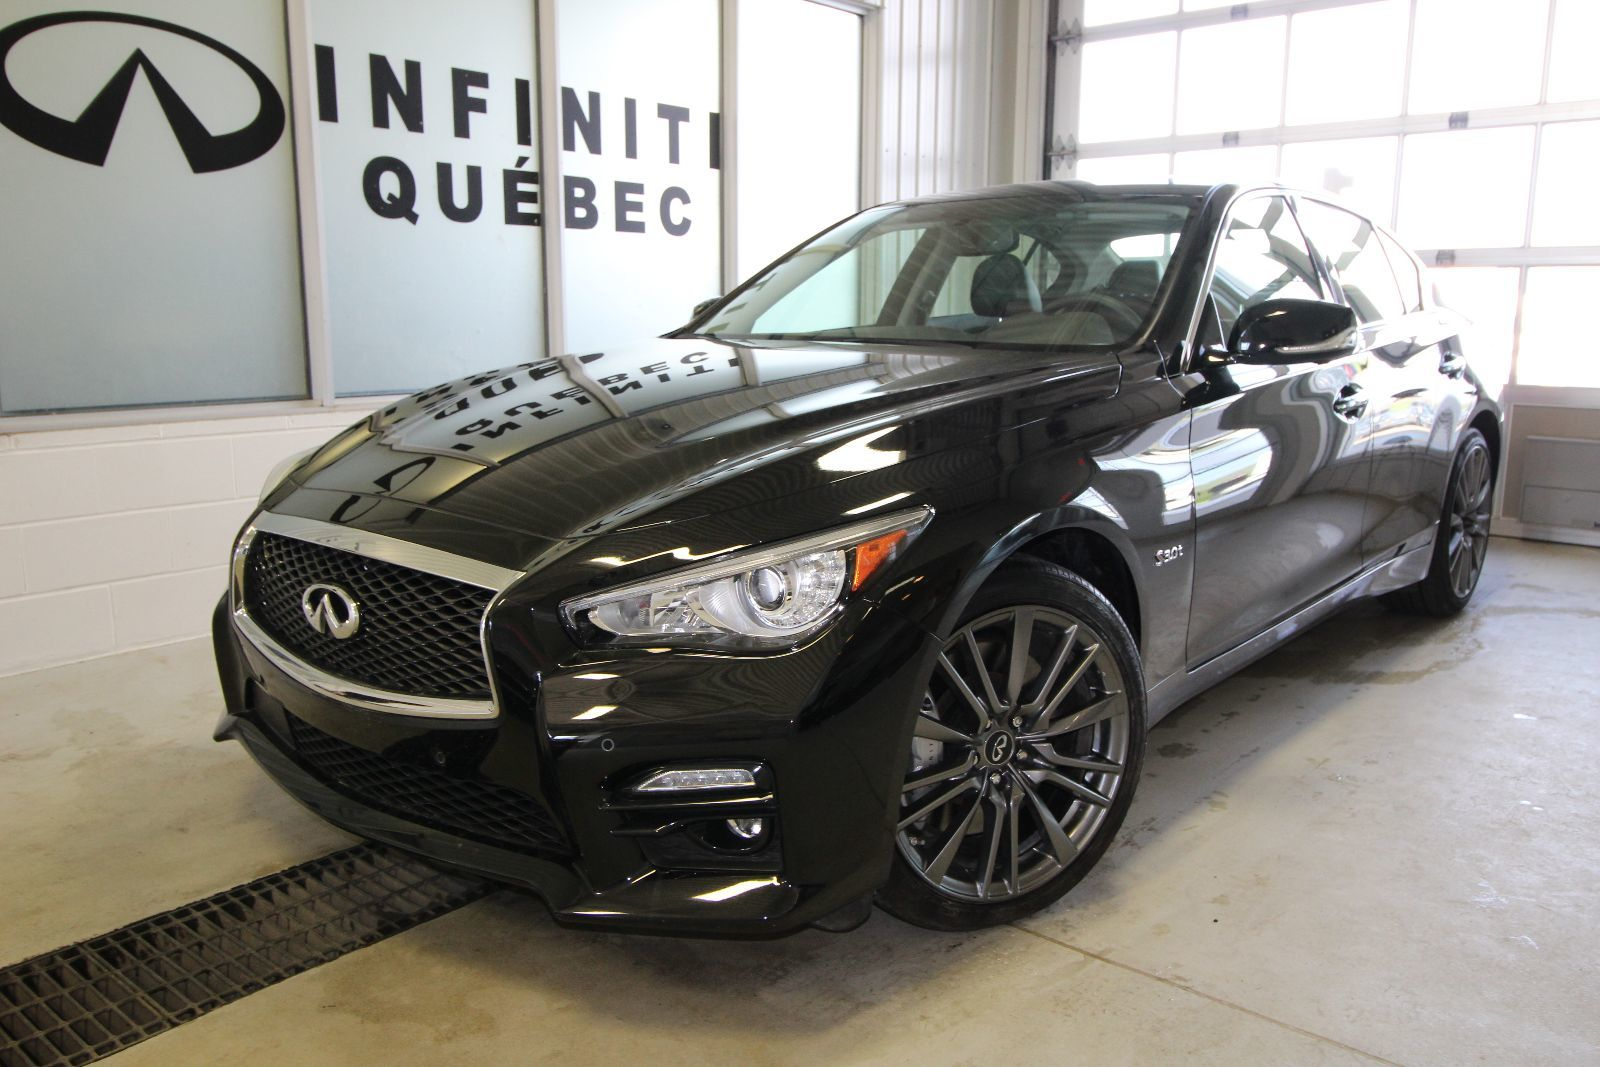 new 2016 infiniti q50 400 hp red sport for sale in quebec infiniti quebec in quebec quebec. Black Bedroom Furniture Sets. Home Design Ideas